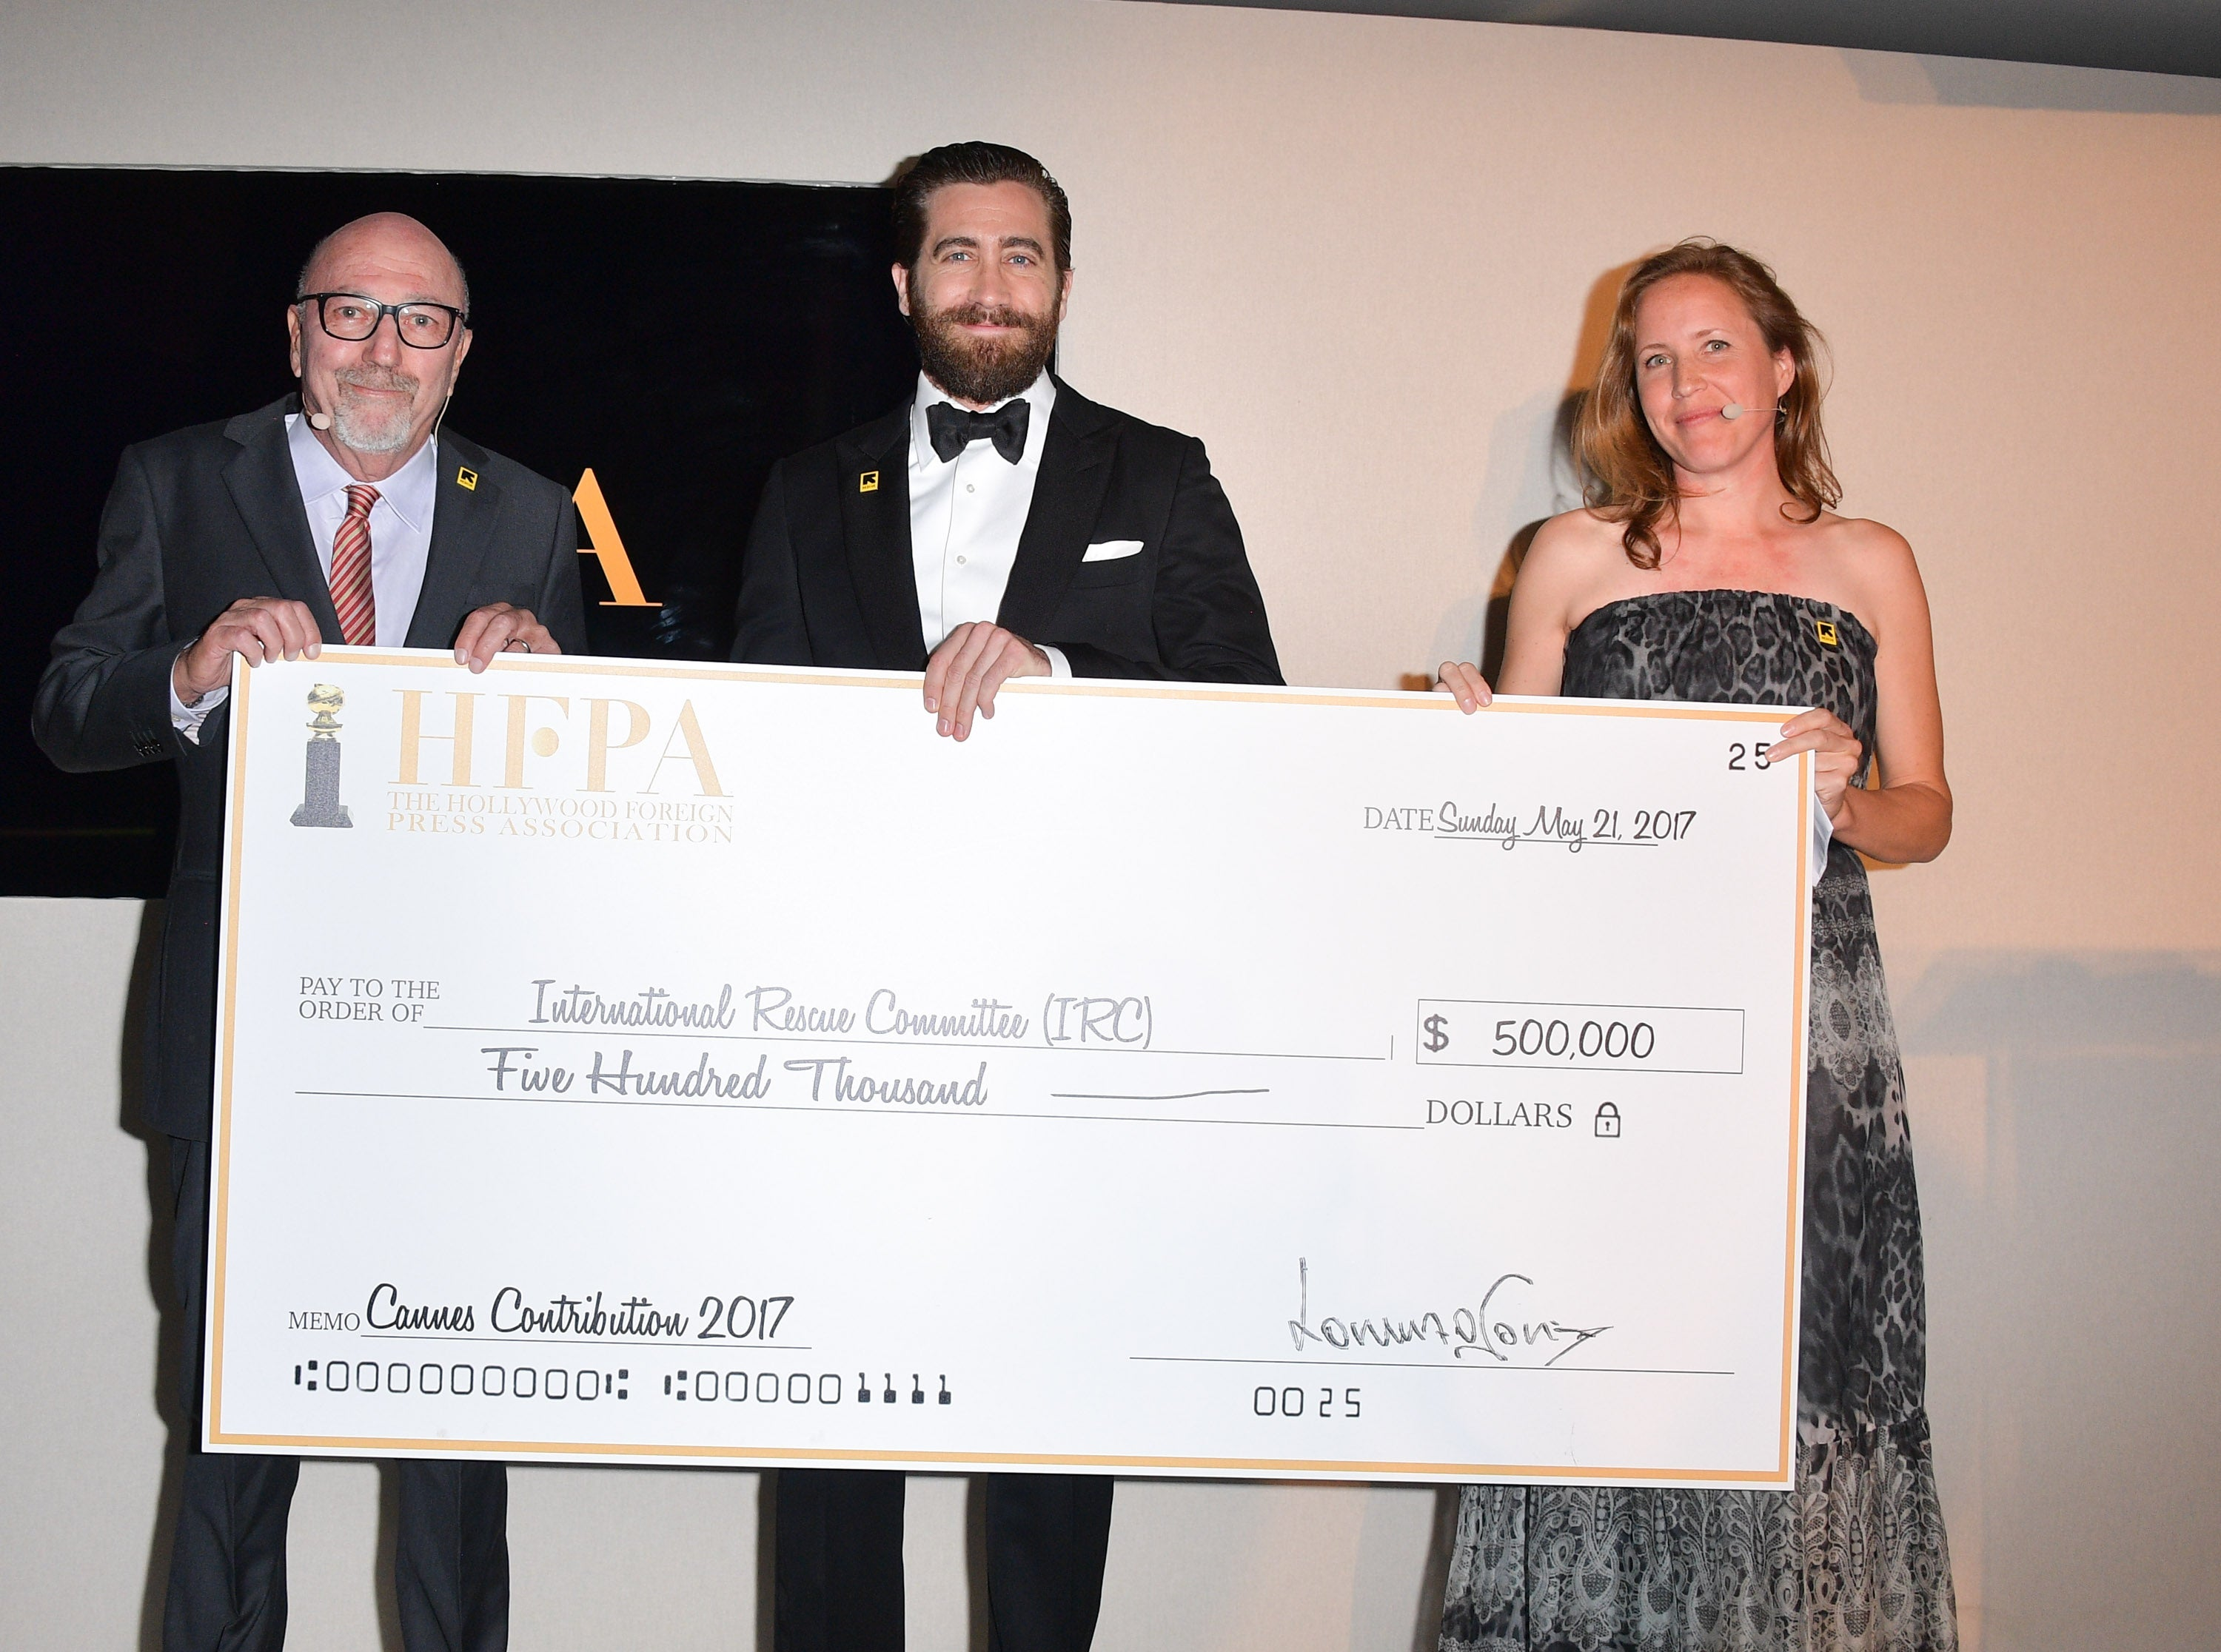 Jake Gyllenhaal, Lorenzo Soria and IRC representative at the HFPA event at Cannes 2017